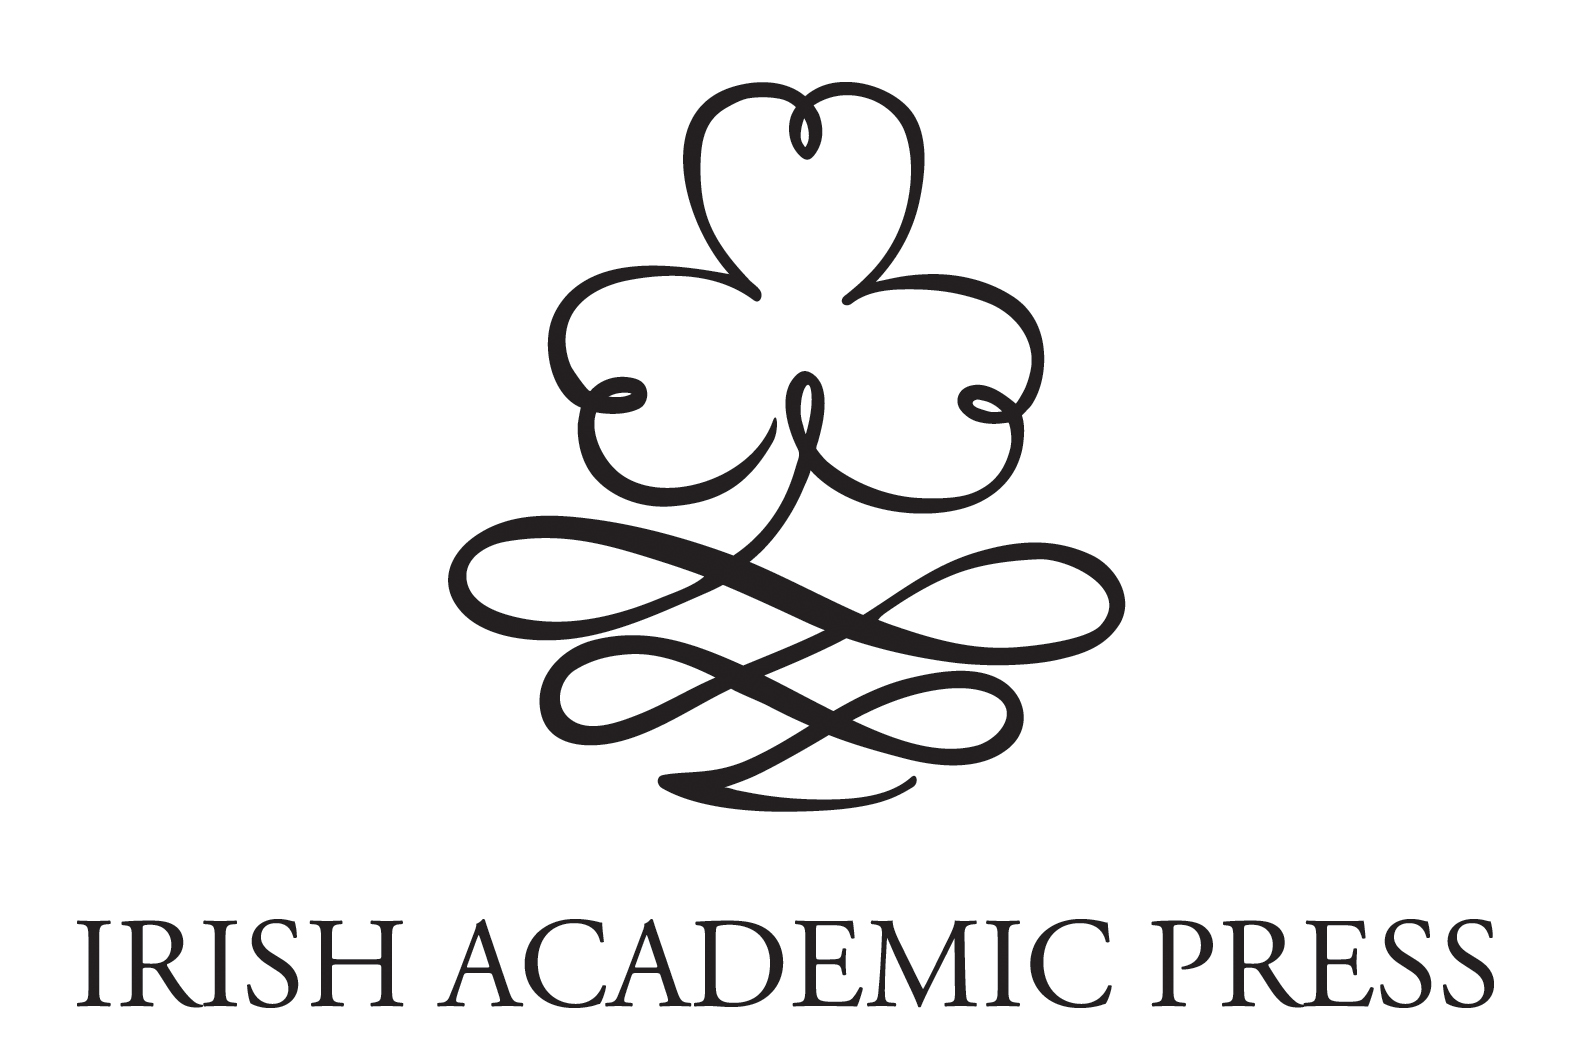 Irish Academic Press